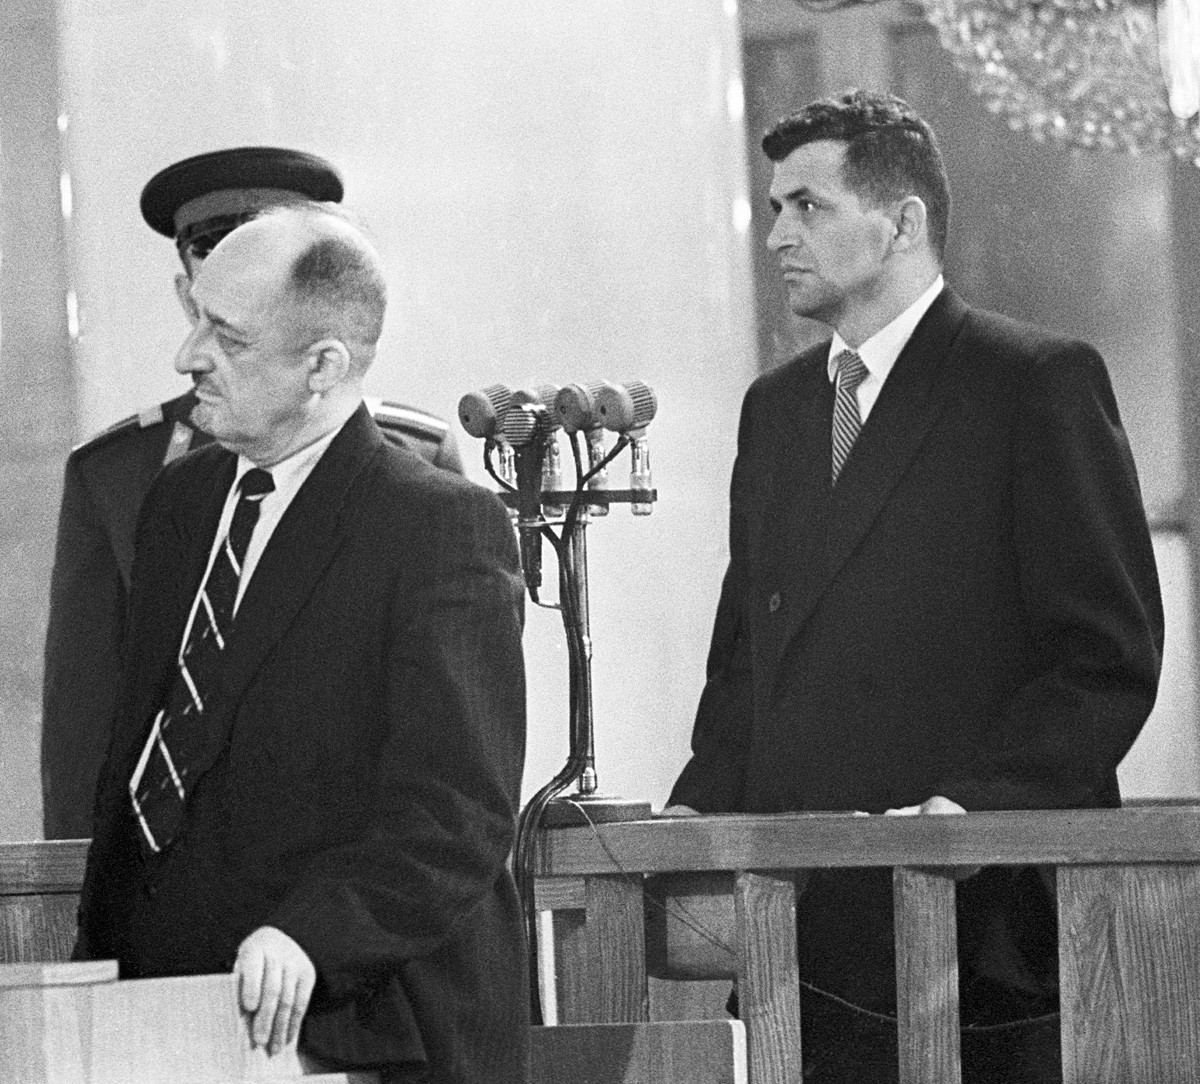 American pilot Francis Gary Powers (R) hears out the verdict of the Military Board of the USSR Supreme Court on August 19, 1960 during an open session in the Pillar Hall of the House of the Unions.